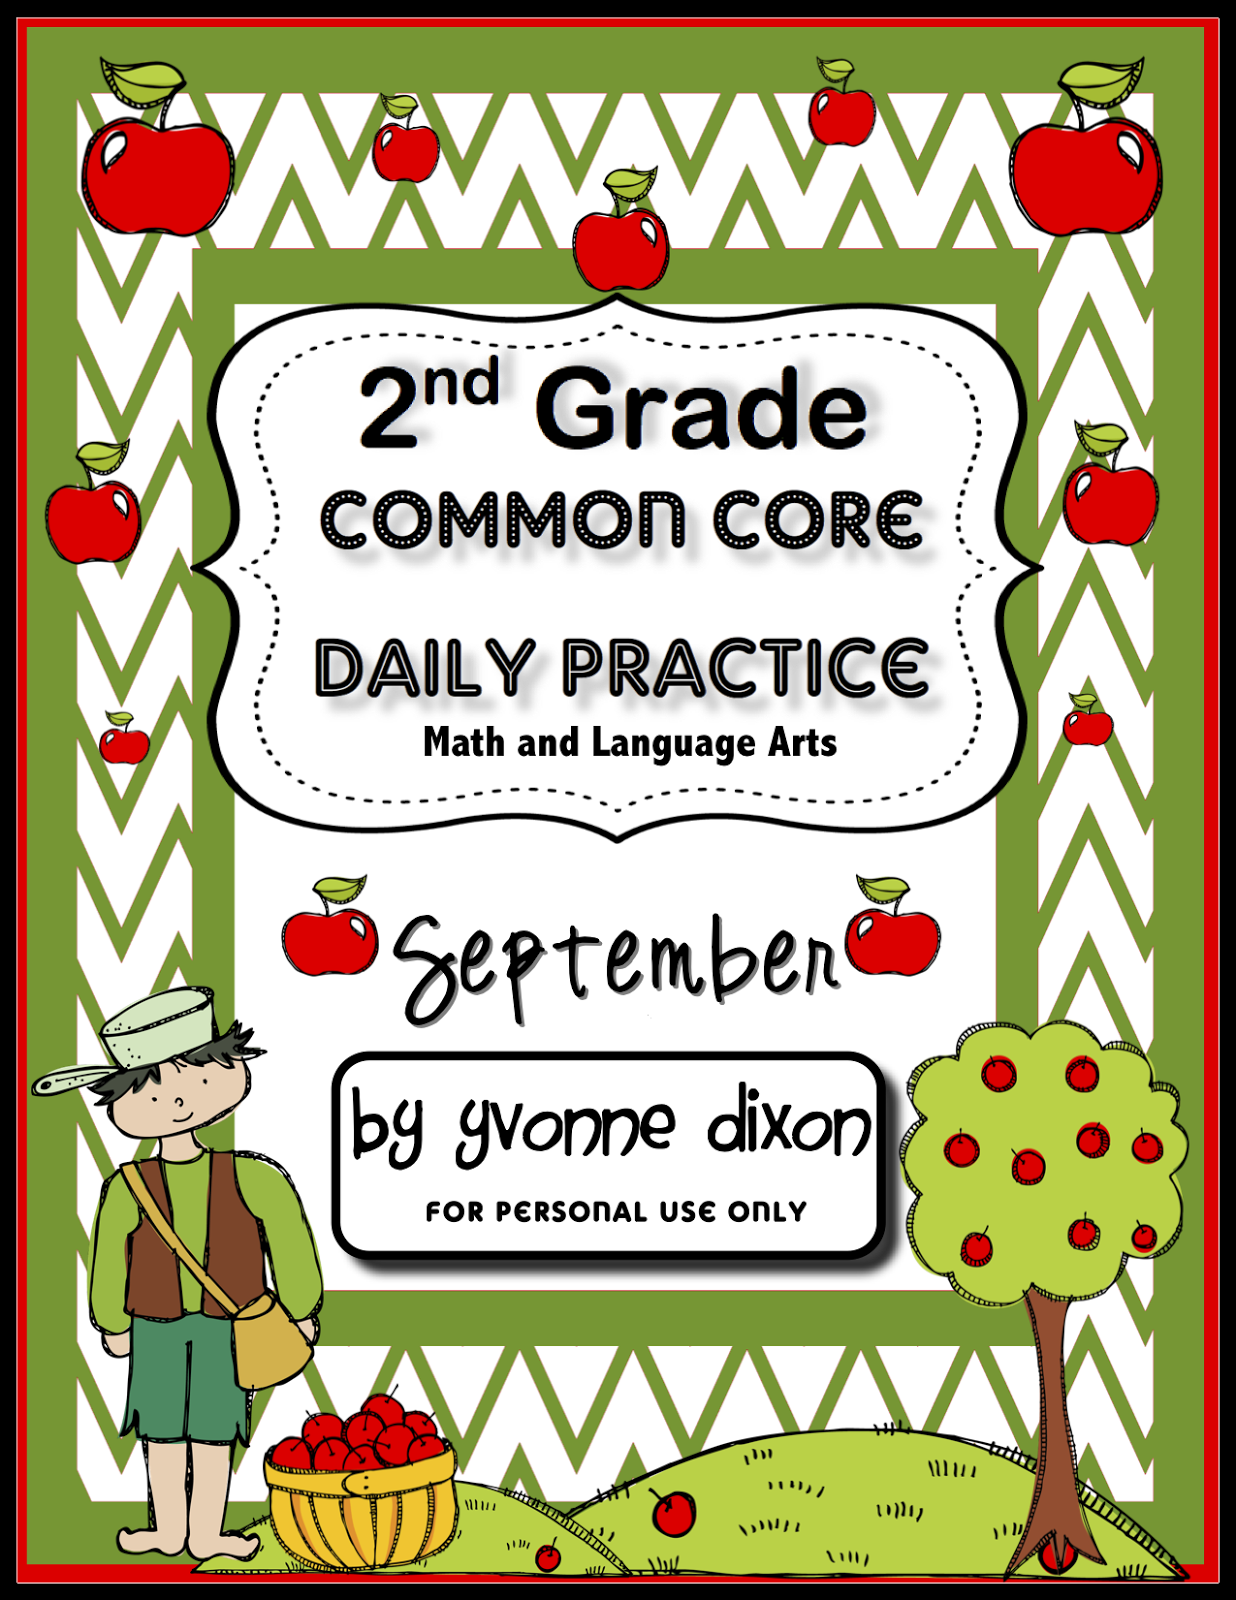 Common Core Daily Practice Sheets!